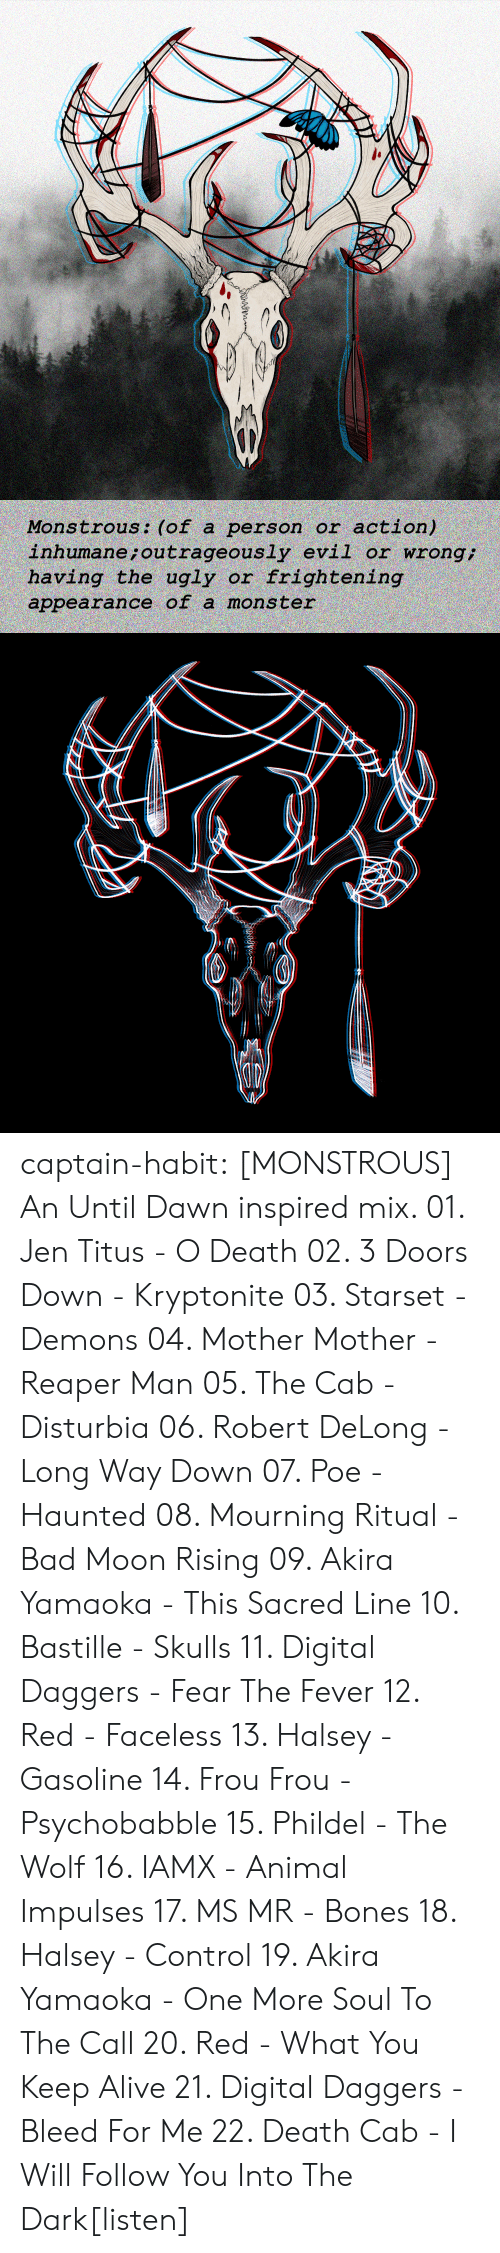 kryptonite: action)  inhumane ; outrageously evil or wrong  having the ugly or frightening  Monstrous: (of a person or  appearance of a mons ter captain-habit:  [MONSTROUS] An Until Dawn inspired mix. 01. Jen Titus - O Death 02. 3 Doors Down - Kryptonite 03. Starset - Demons 04. Mother Mother - Reaper Man 05. The Cab - Disturbia 06. Robert DeLong - Long Way Down 07. Poe - Haunted  08. Mourning Ritual - Bad Moon Rising 09. Akira Yamaoka - This Sacred Line 10. Bastille - Skulls 11. Digital Daggers - Fear The Fever 12. Red - Faceless 13. Halsey - Gasoline  14. Frou Frou - Psychobabble  15. Phildel - The Wolf 16. IAMX - Animal Impulses 17. MS MR - Bones 18. Halsey - Control 19. Akira Yamaoka - One More Soul To The Call 20. Red - What You Keep Alive 21. Digital Daggers - Bleed For Me 22. Death Cab - I Will Follow You Into The Dark[listen]